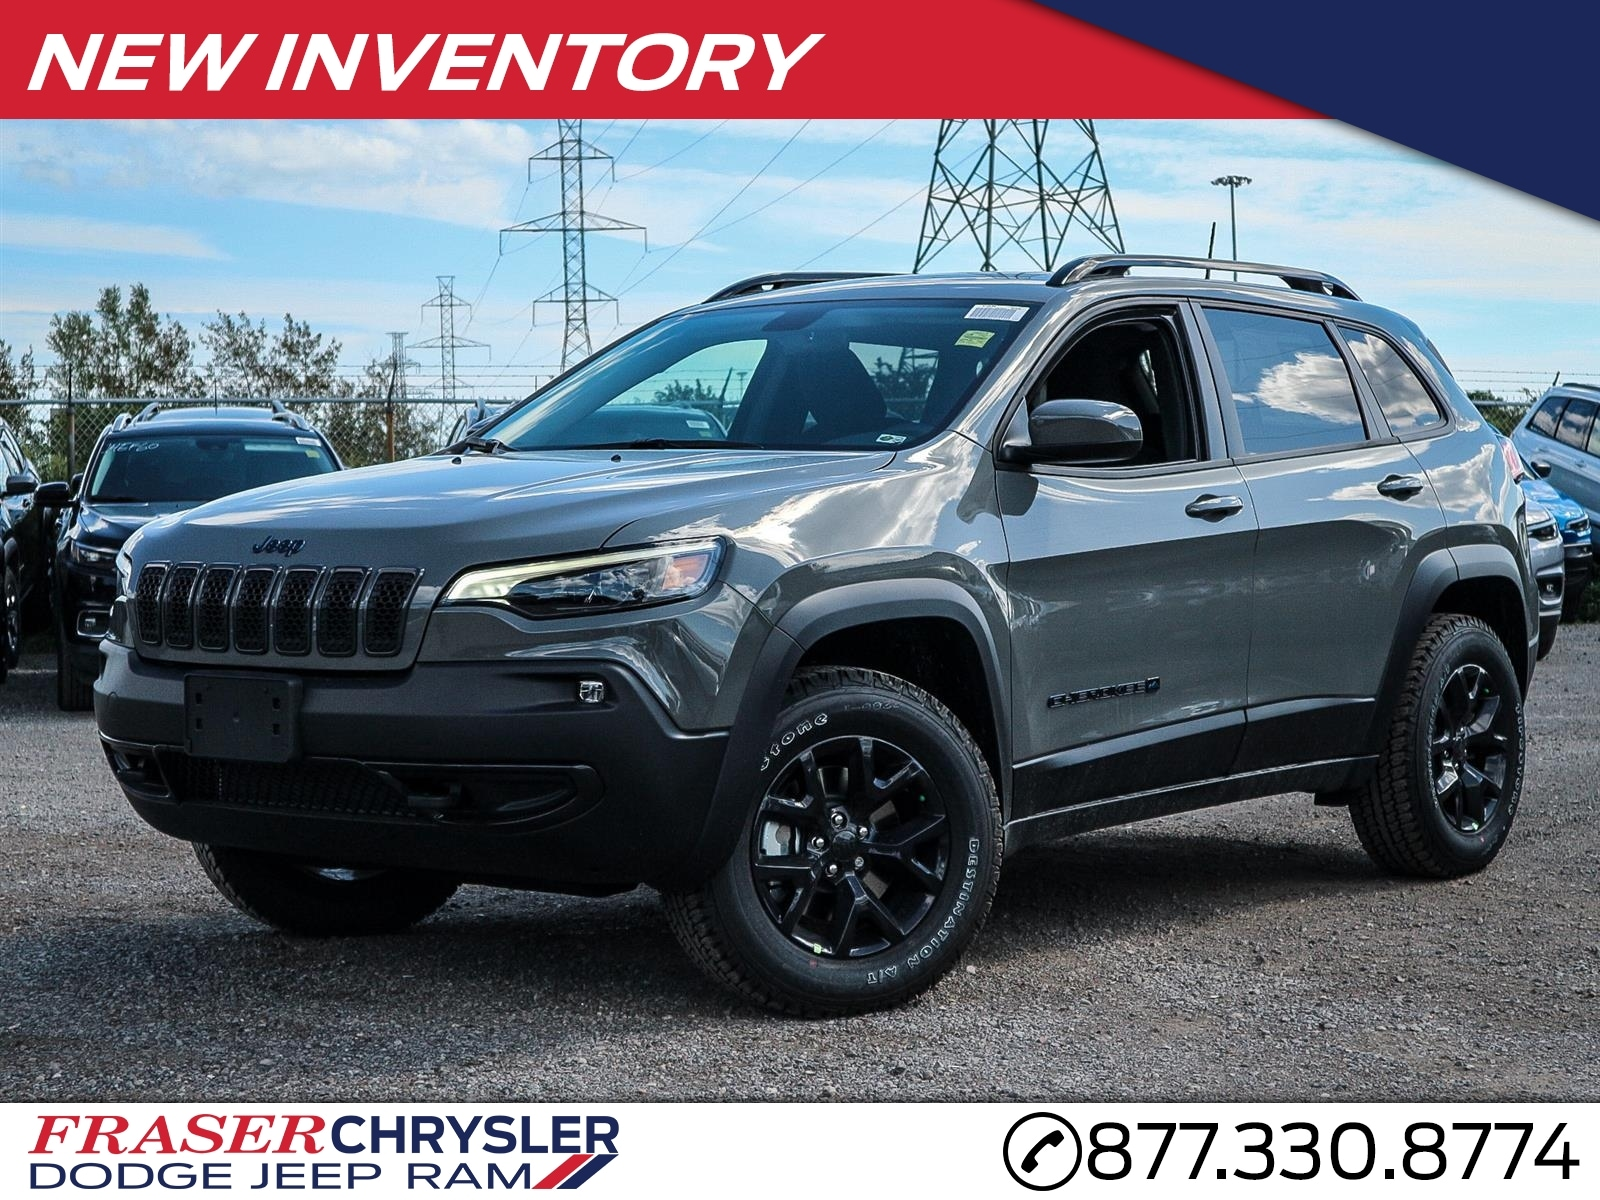 New Jeep Cherokee Vehicles for Sale | Chrysler Canada Deals